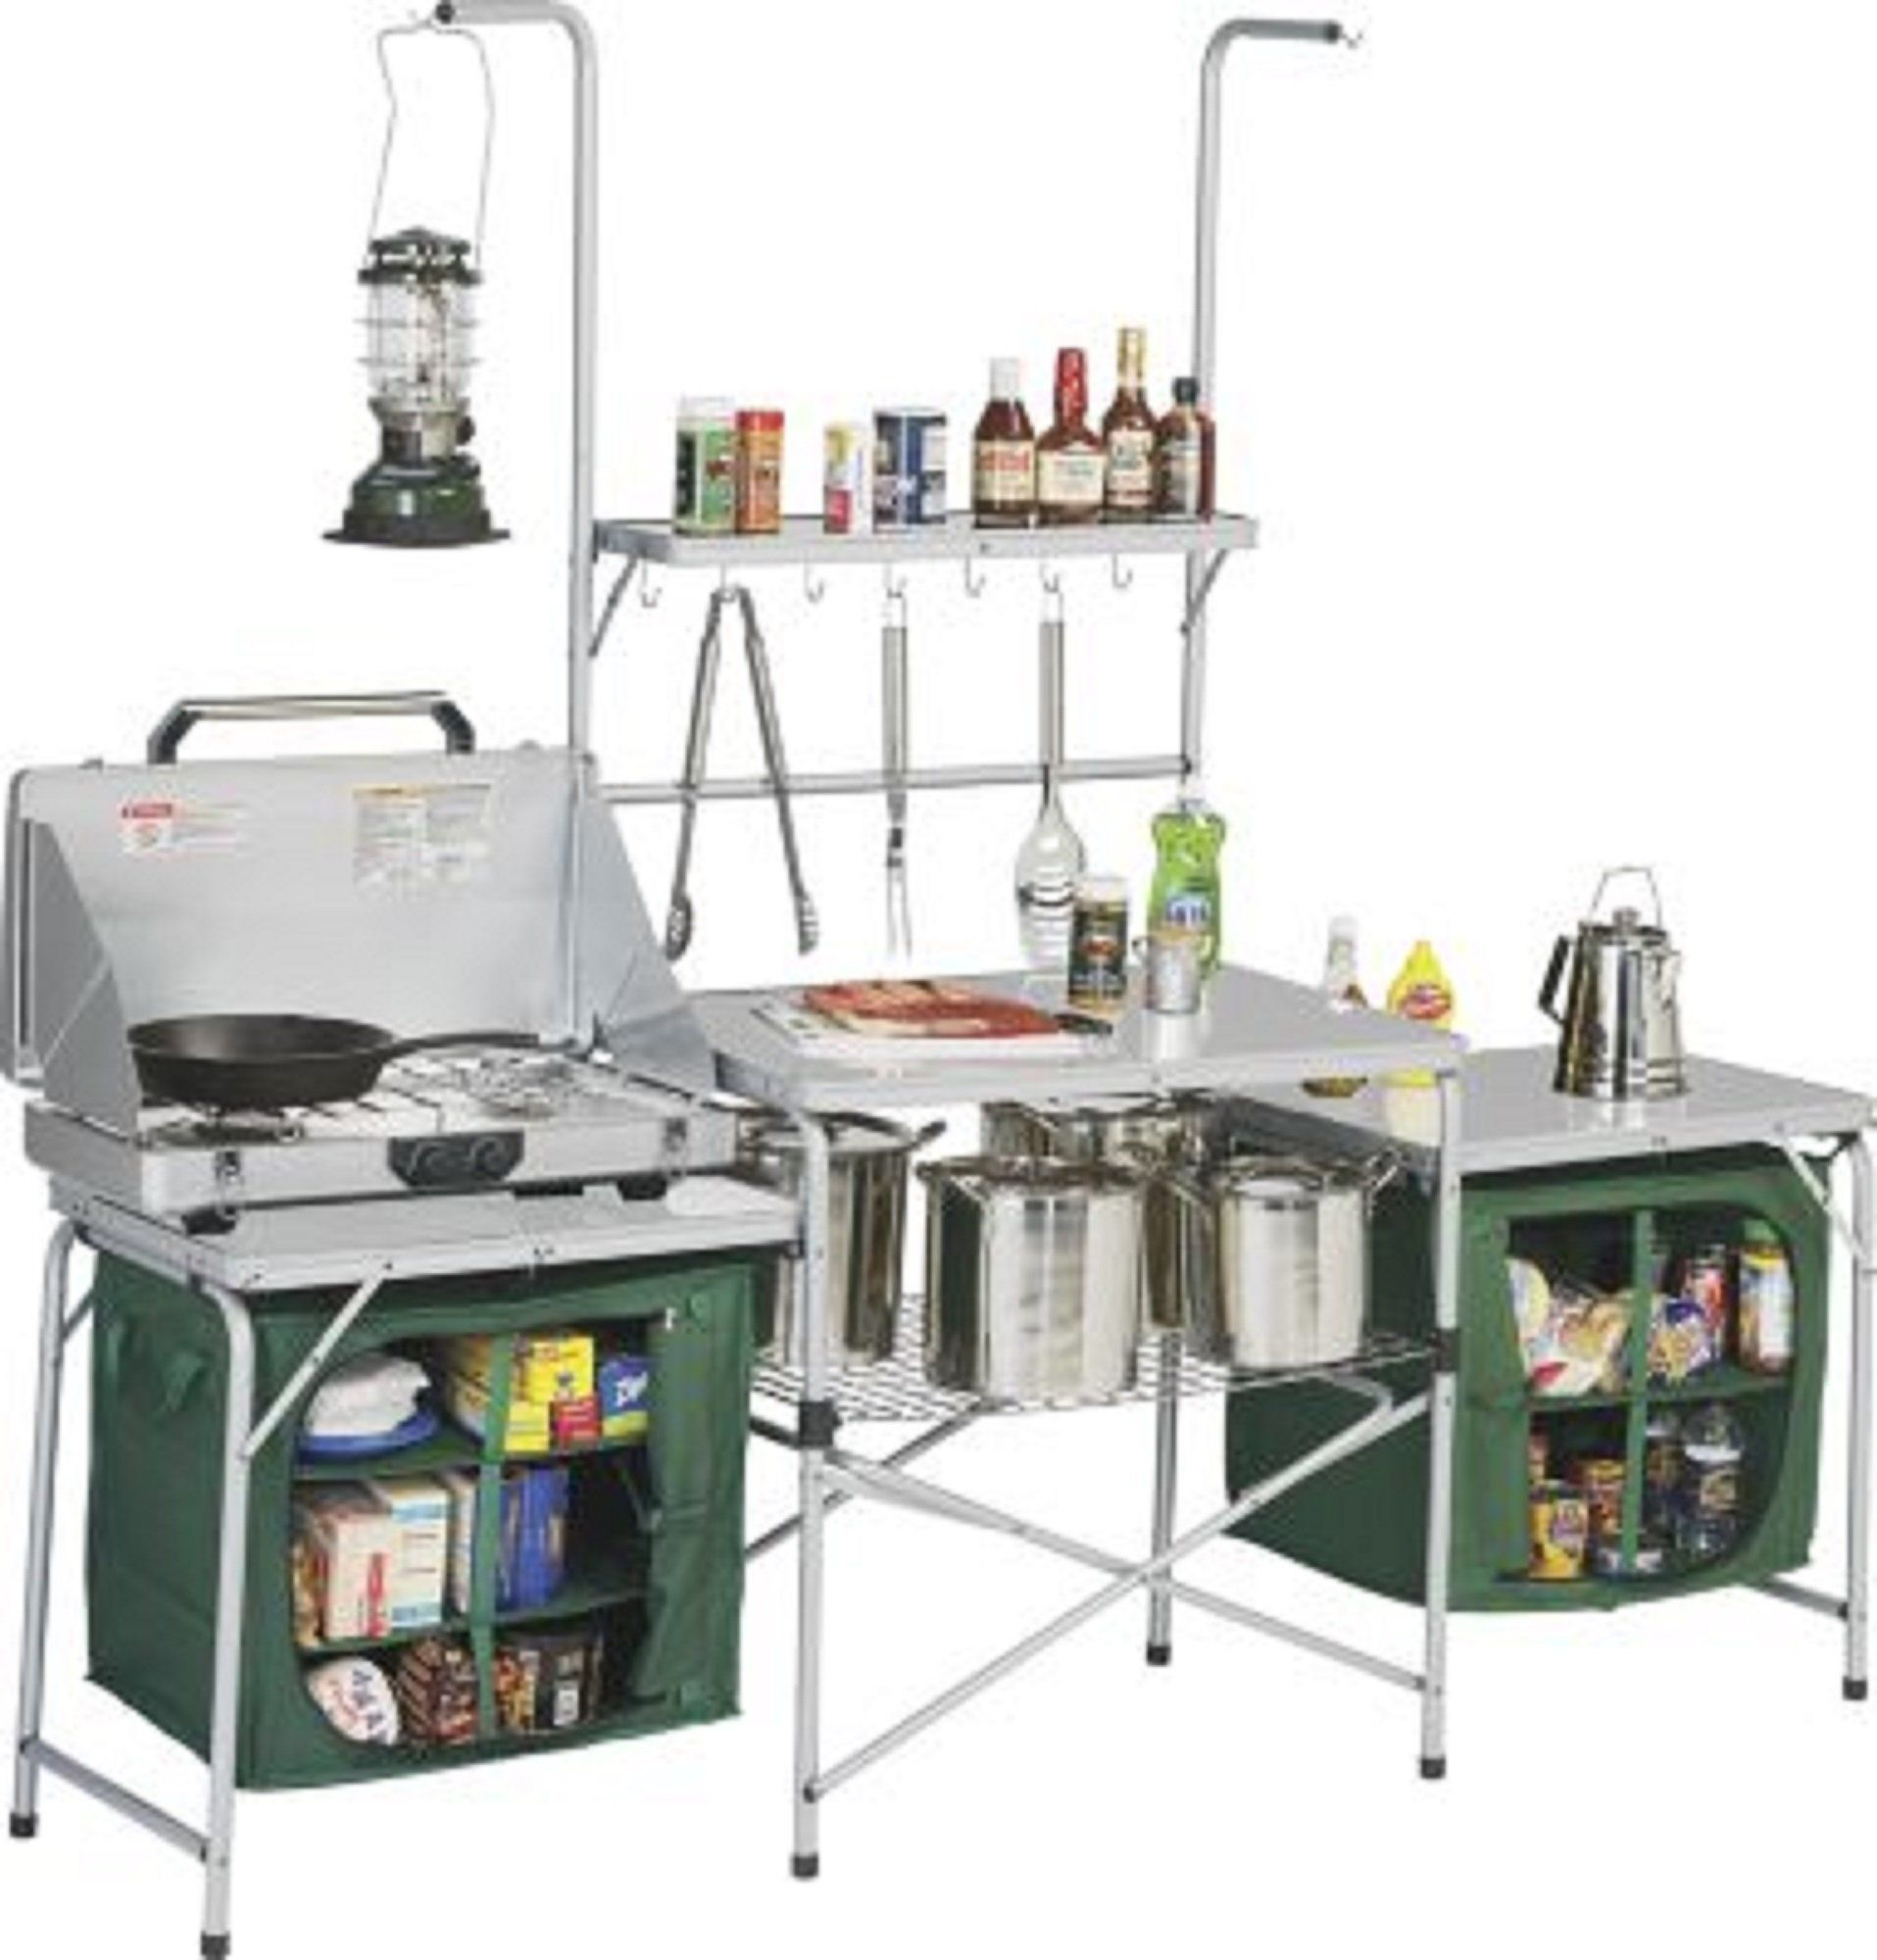 Outdoor Deluxe Portable Camping Kitchen, with PVC Sink & Drain, Lets ...